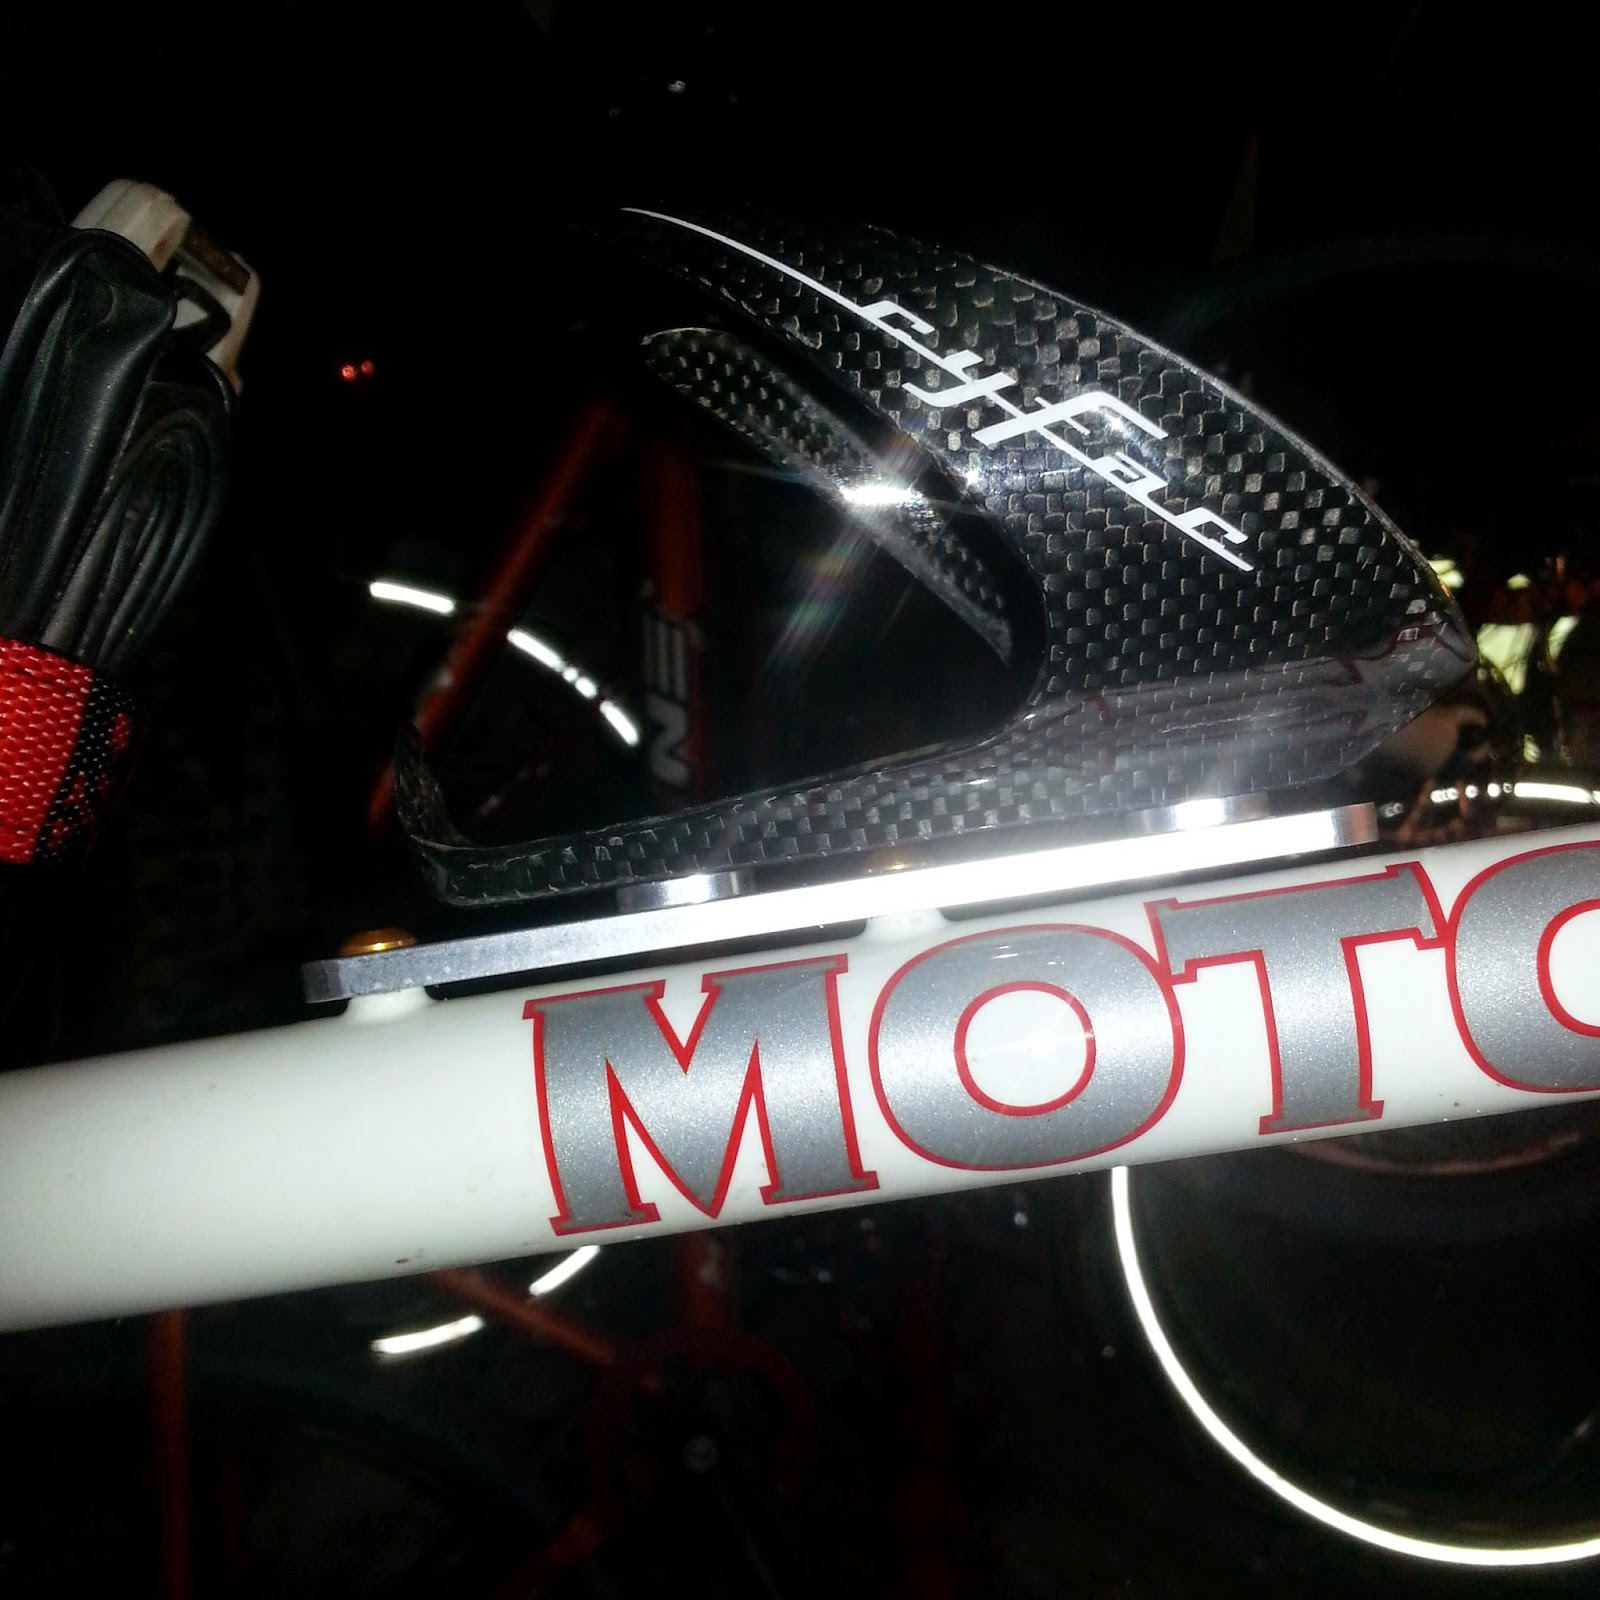 Mount Skidmore Bottle Cage Adapter on the FCU